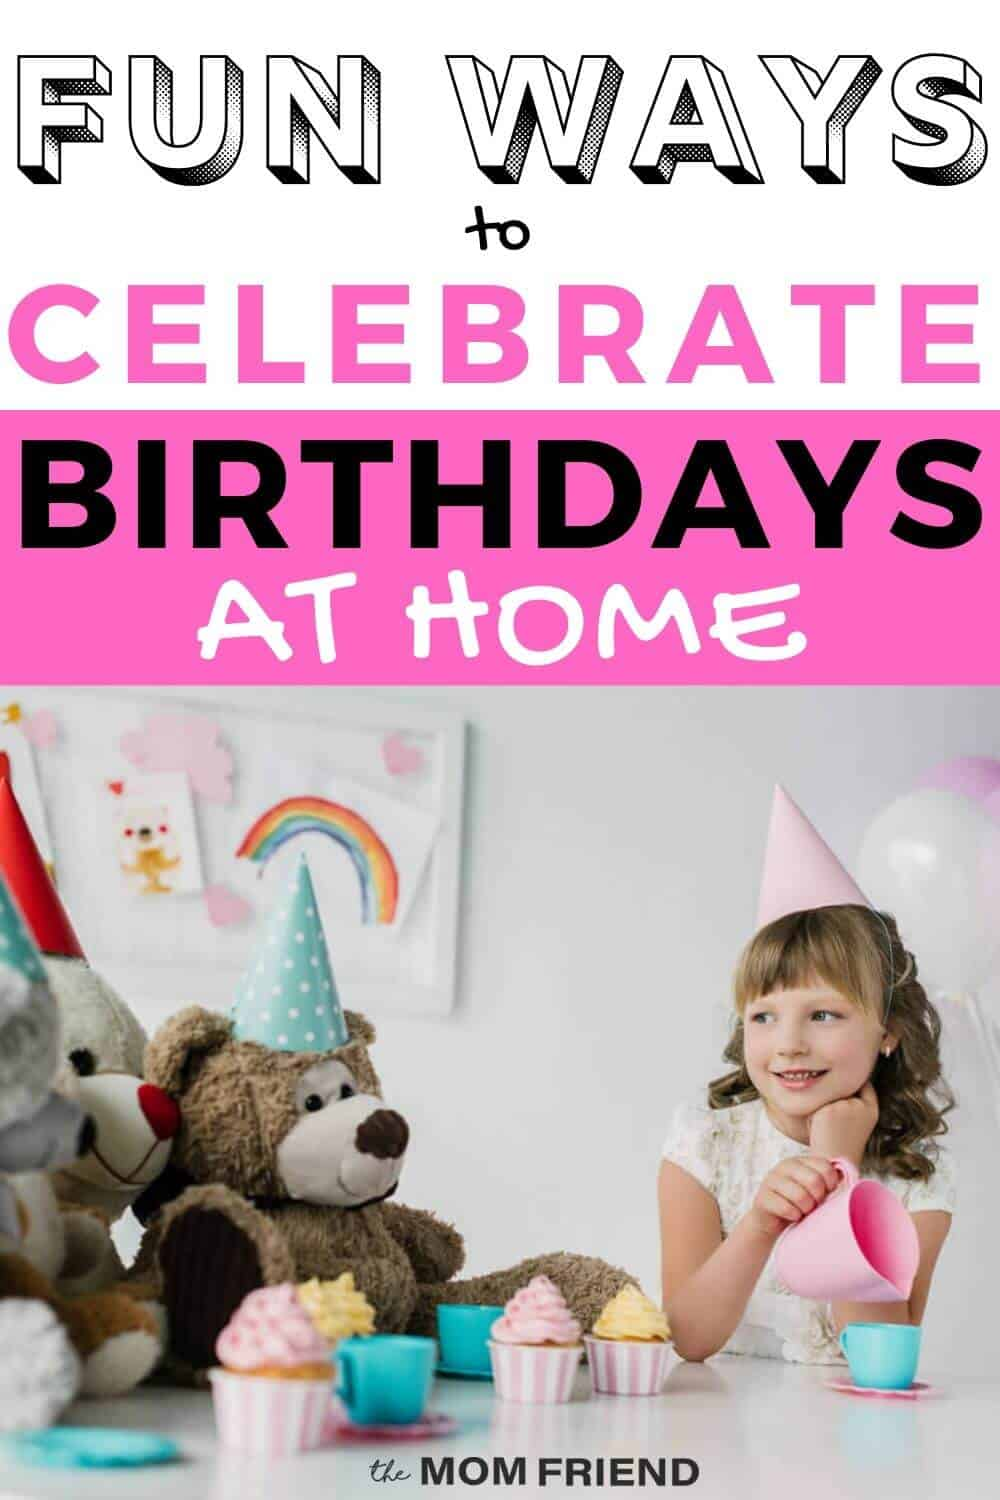 Party Canceled? Fun Ways to Celebrate Birthdays at Home during Social Distancing